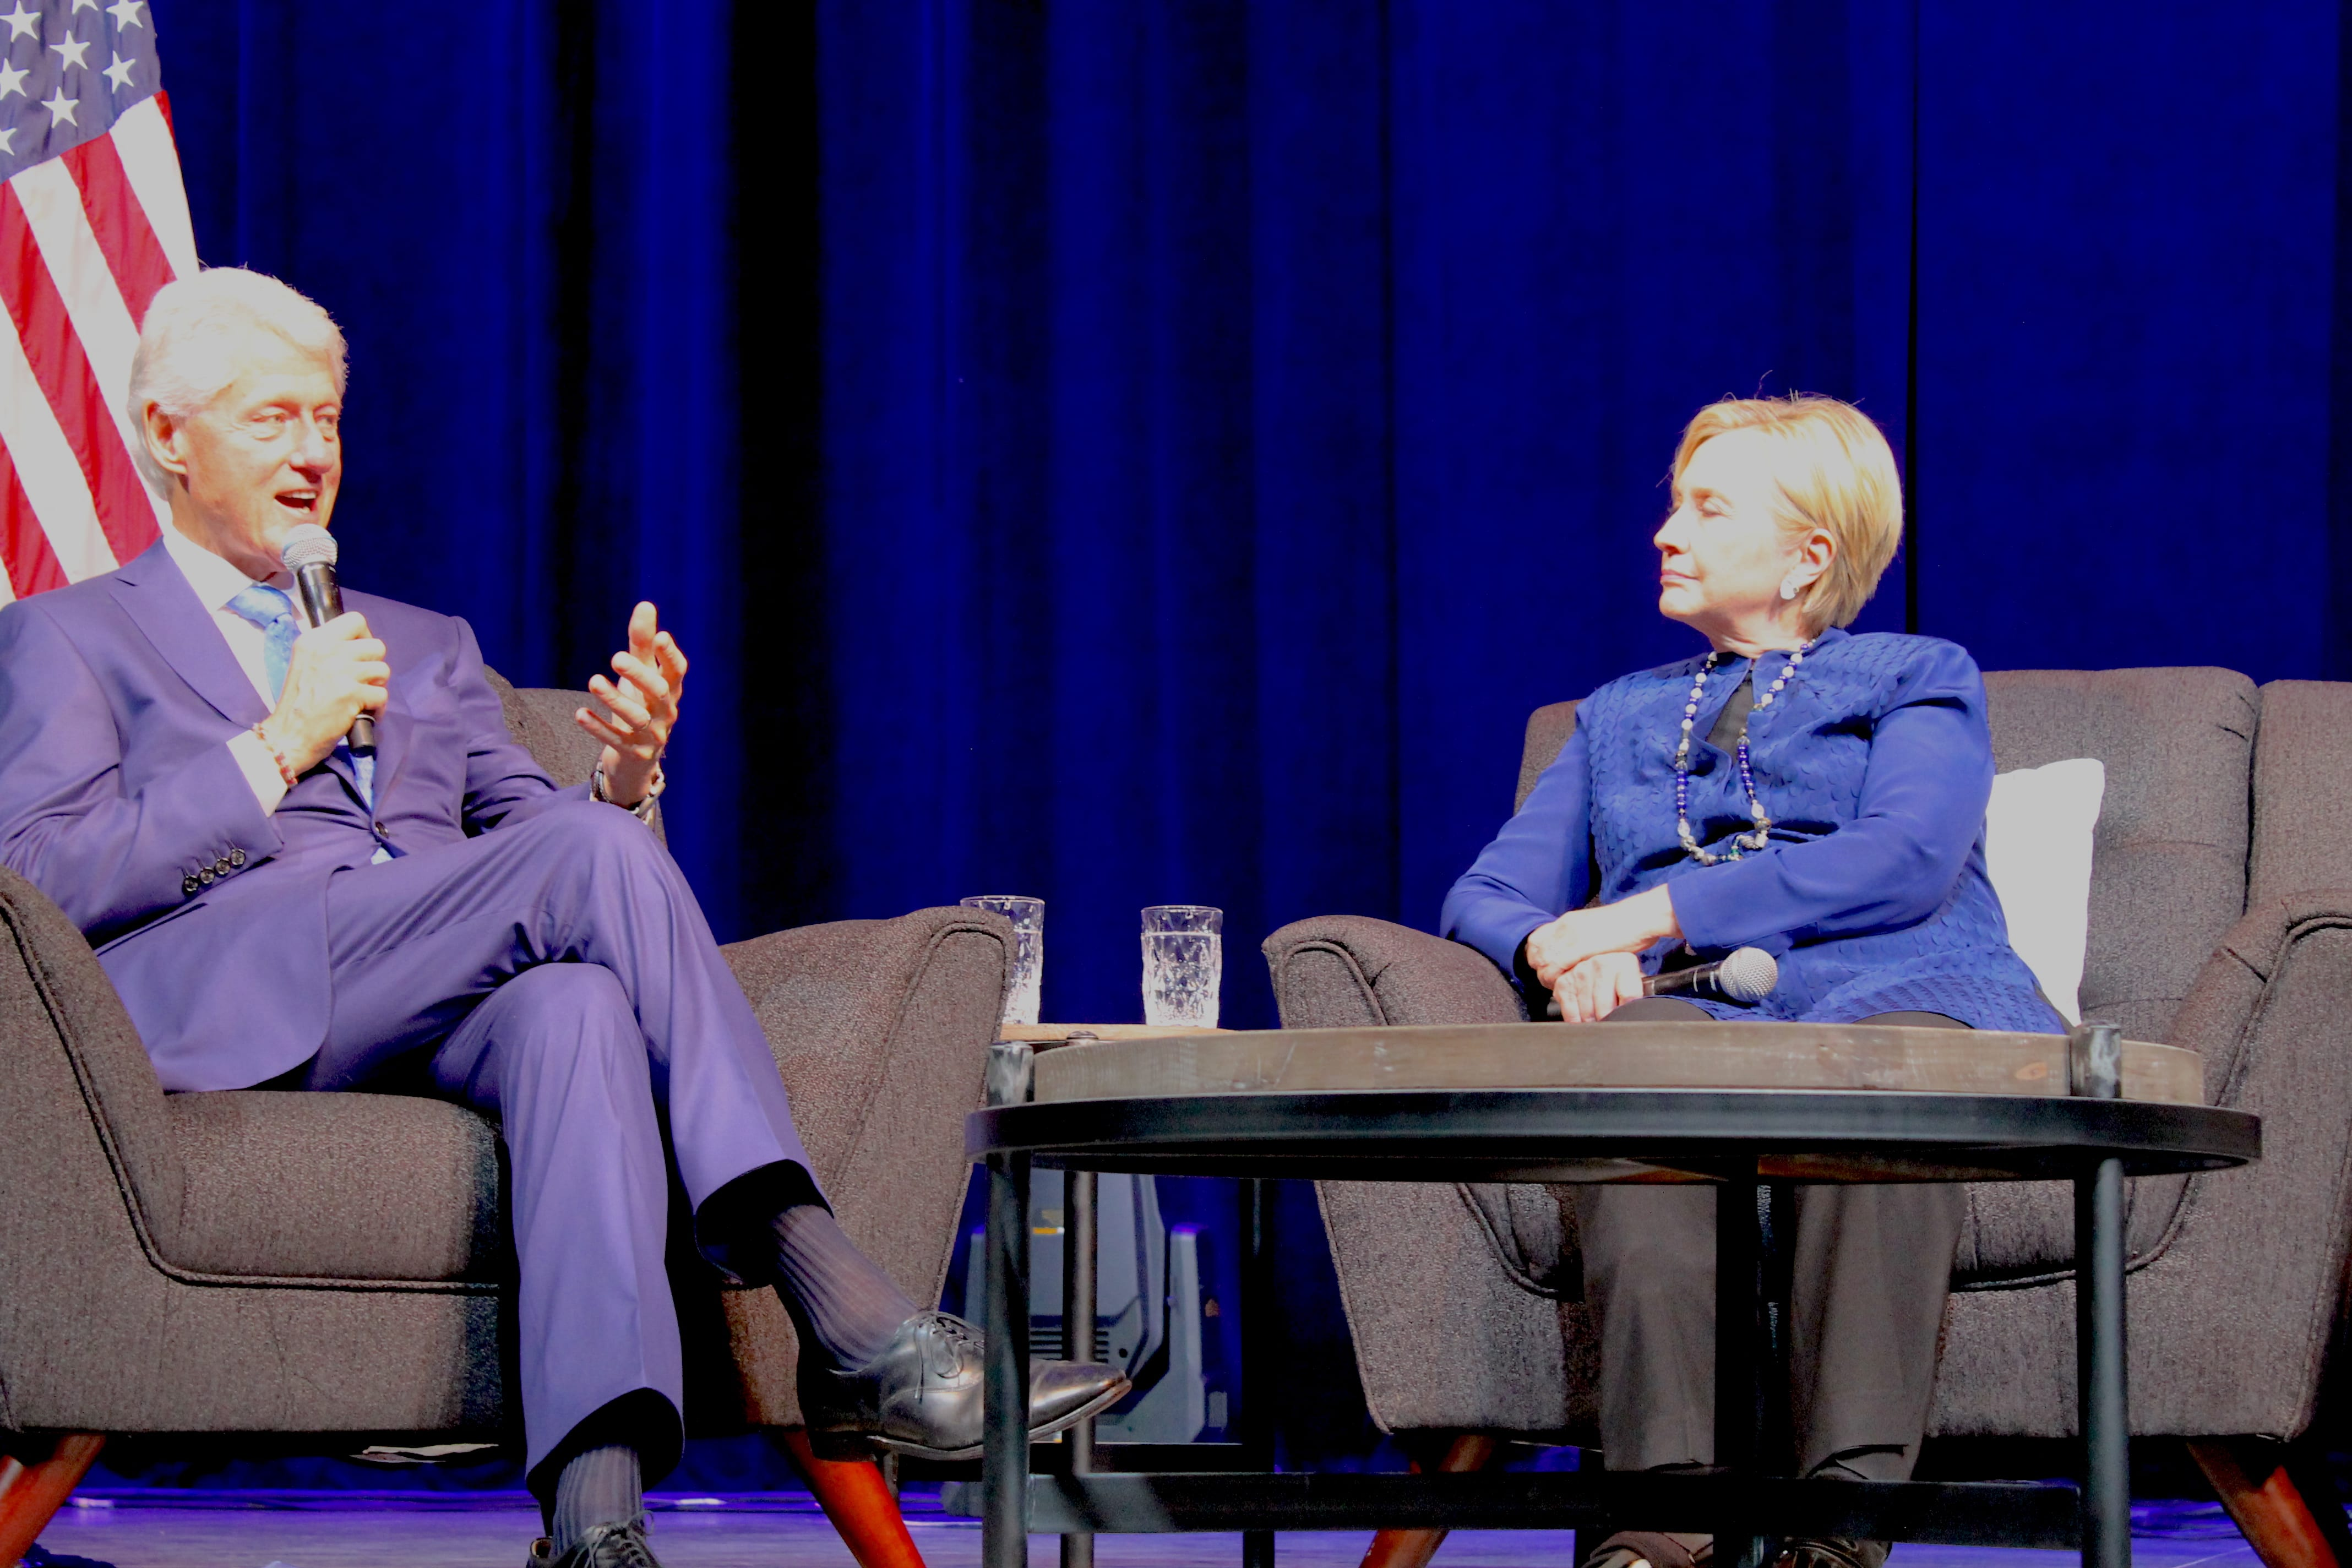 Clintons appear at first-of-its-kind event in Irving